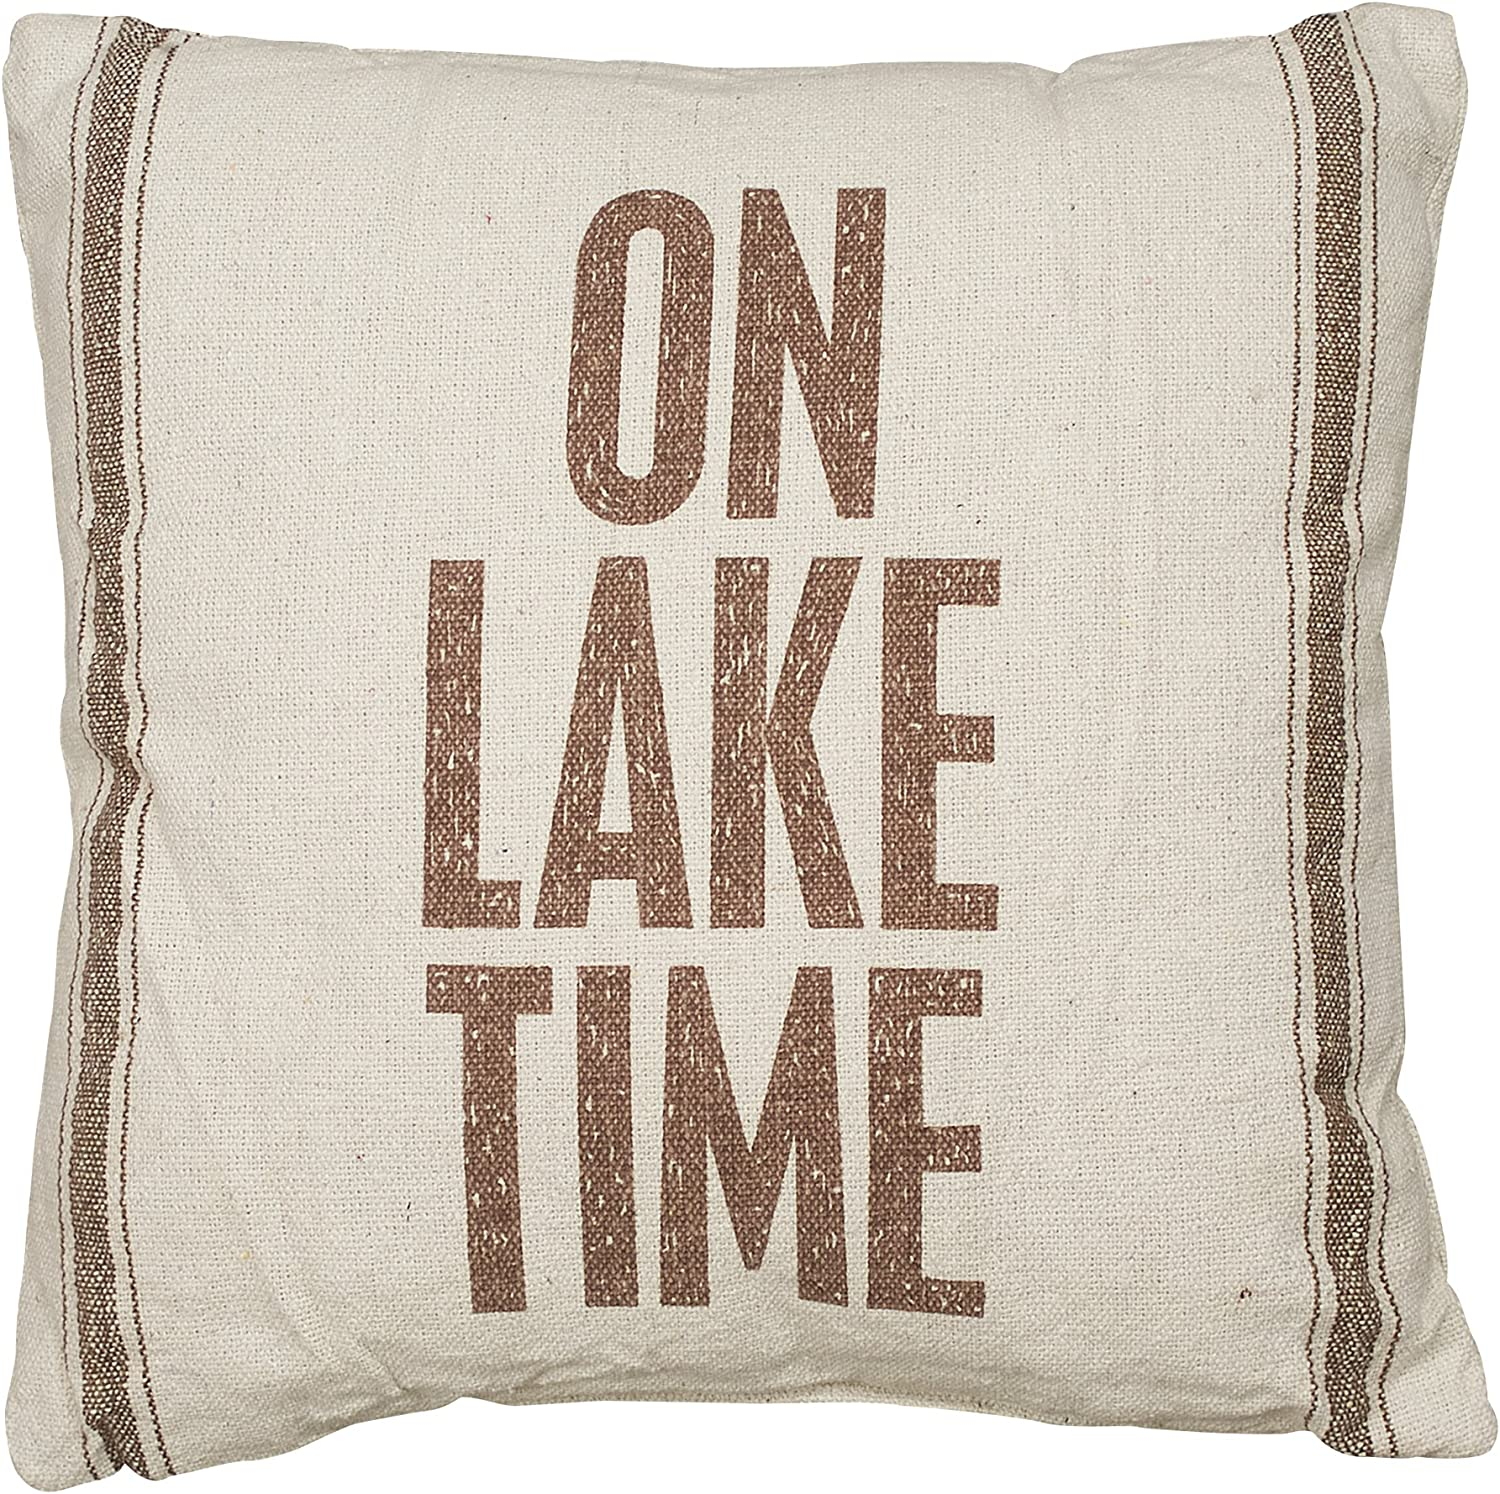 Primitives by Kathy Hand-Lettered Throw Pillow Lake Life